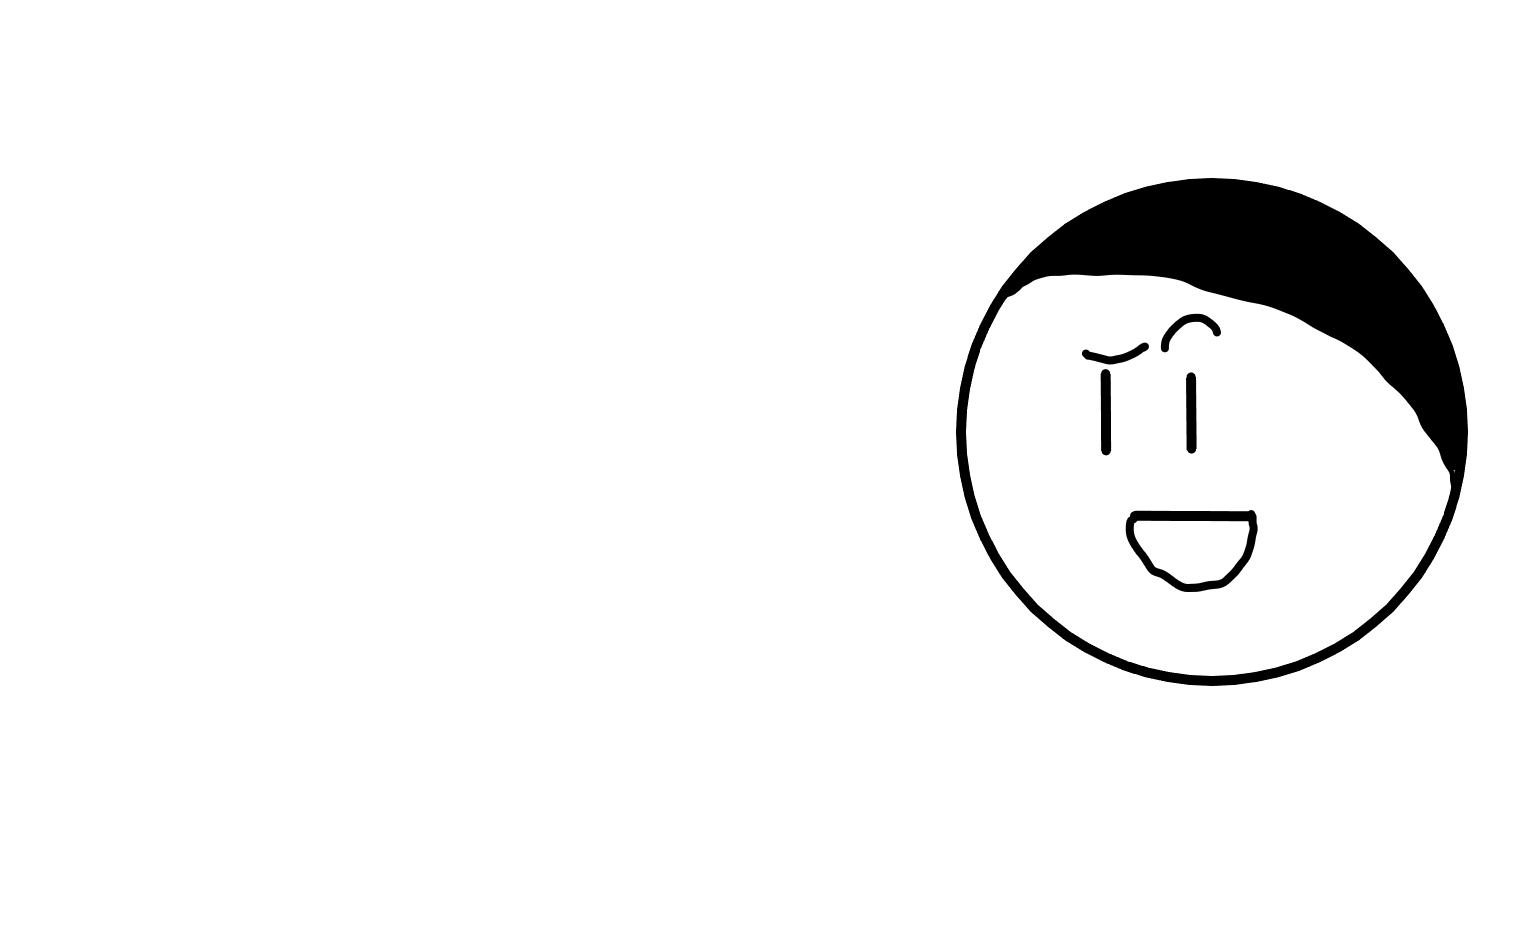 Talking face - arched brow and smiling.png